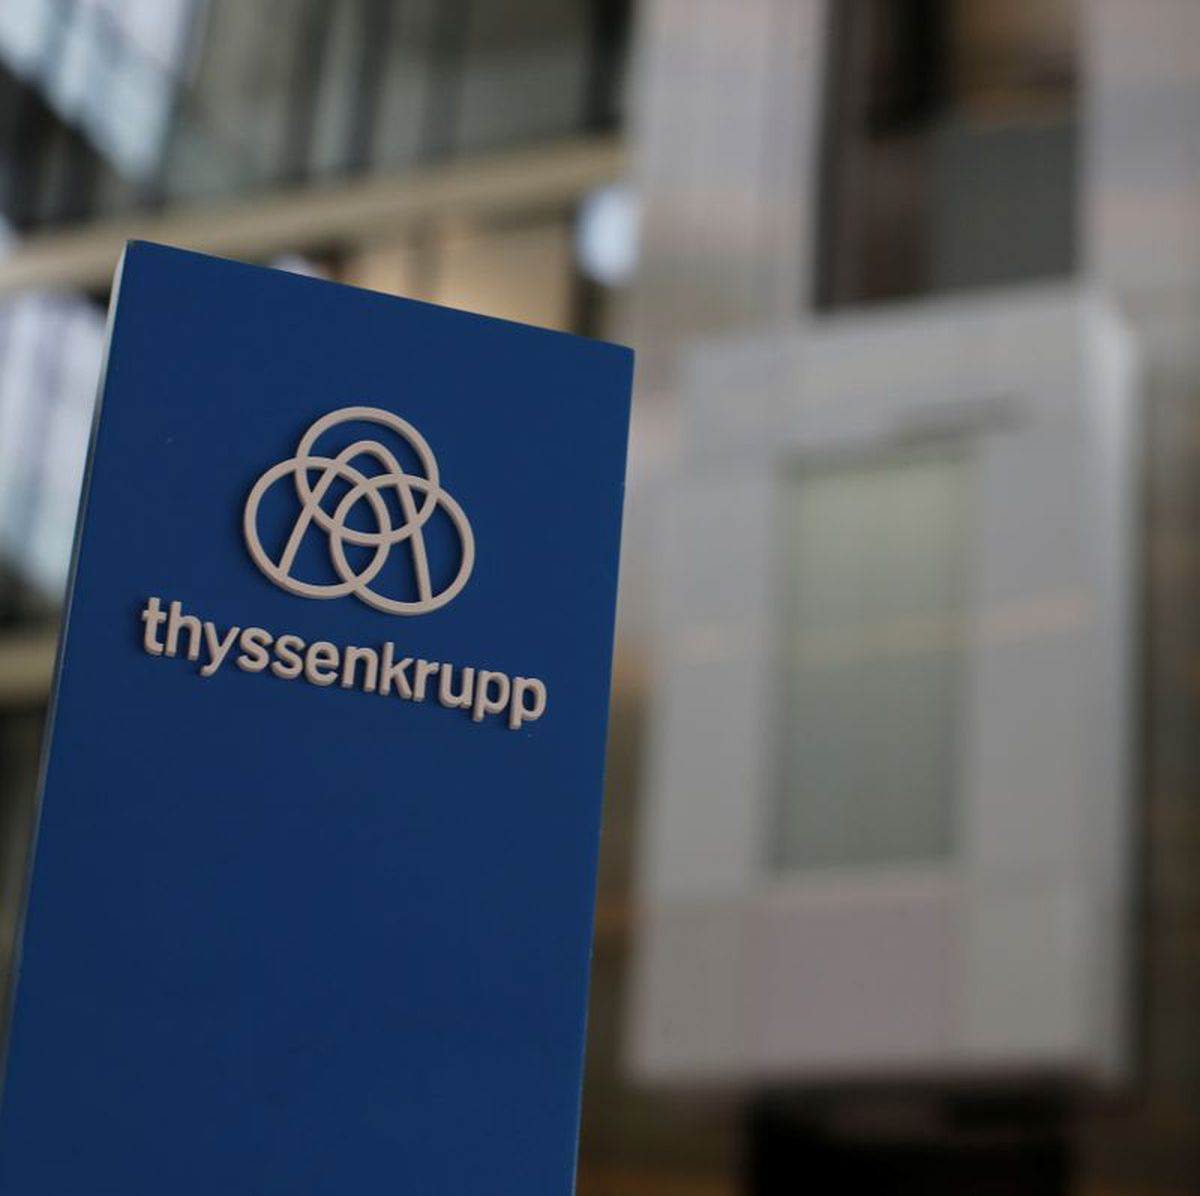 Thyssenkrupp sells elevator unit for $18.7-billion to Advent-led consortium